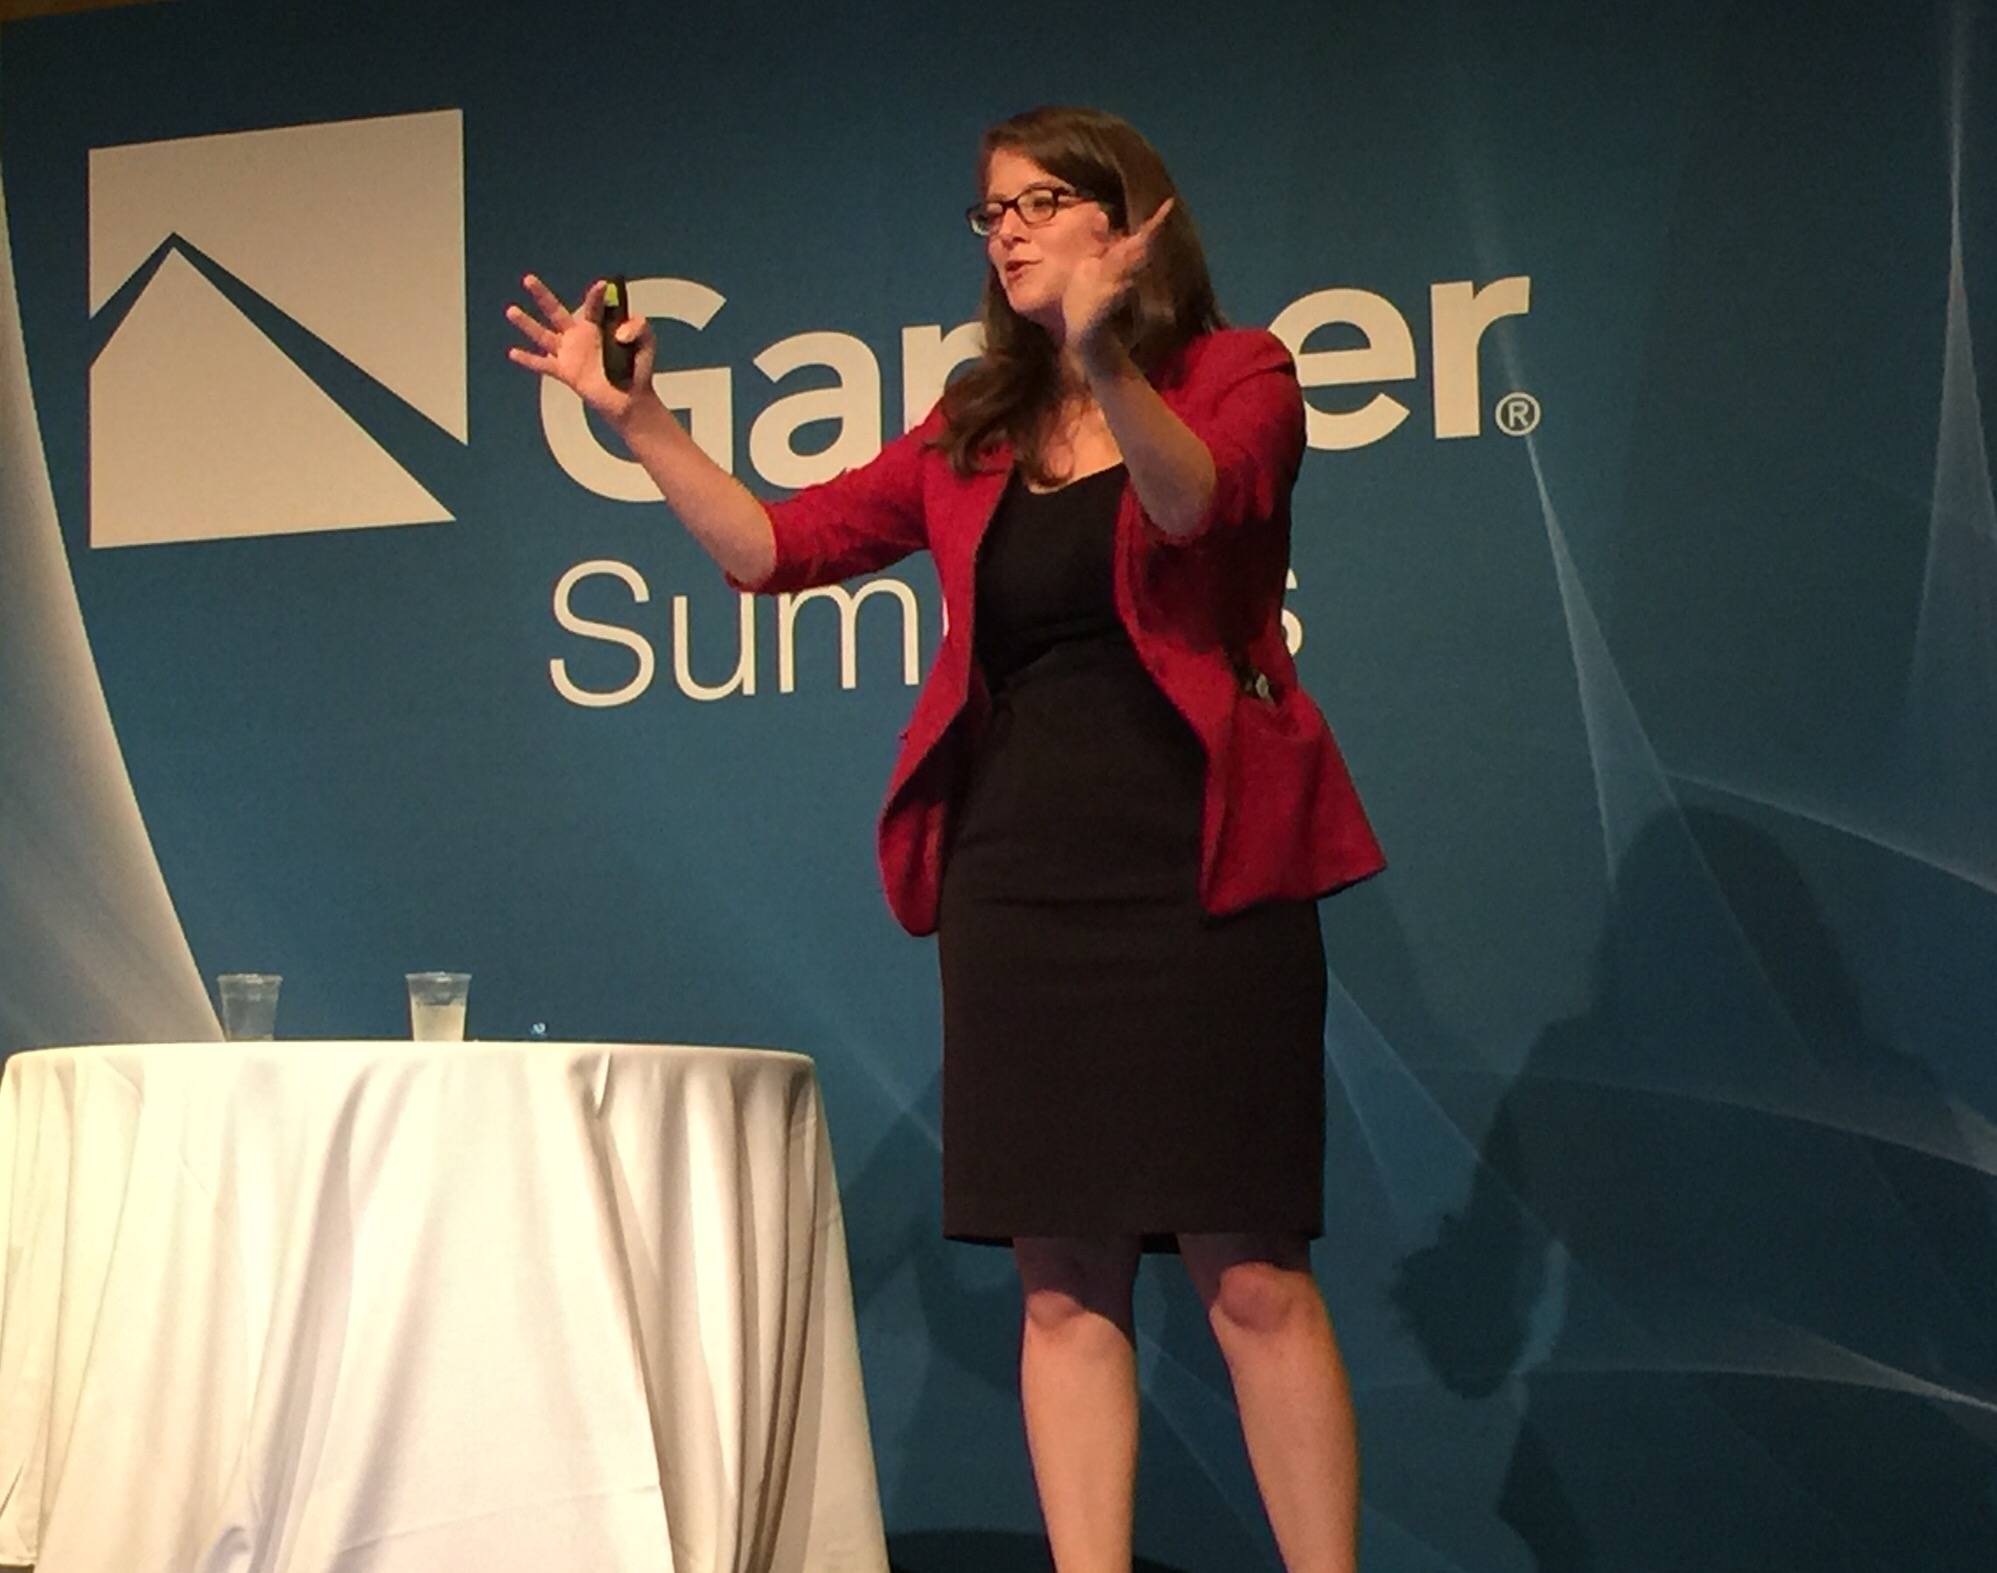 Speaking at the Gartner Customer 360 Summit, Gartner's Jenny Sussin explains that in digital business  it's critical for organizations to make meaningful customer touchpoints.